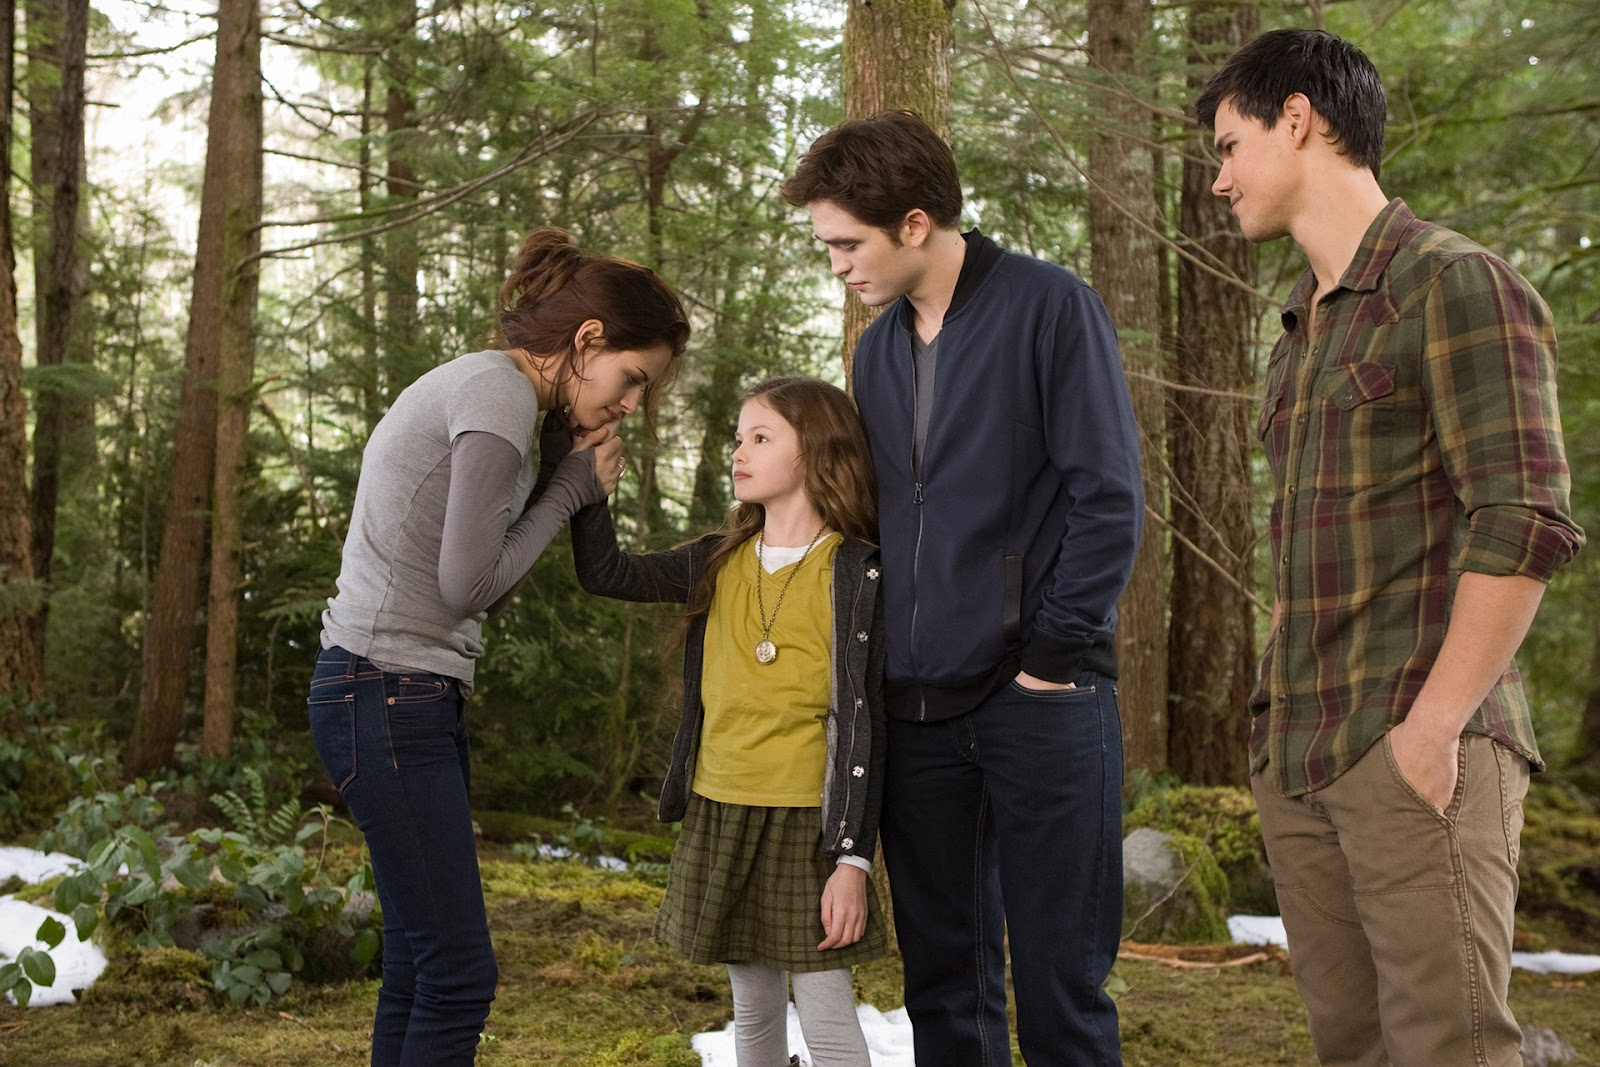 http://2.bp.blogspot.com/-Fw561ZD0oNc/UE-NQUgd2wI/AAAAAAAAdWM/JH-7aRnJ_0k/s1600/Breaking-Dawn-part2-wallpapers-1.jpg